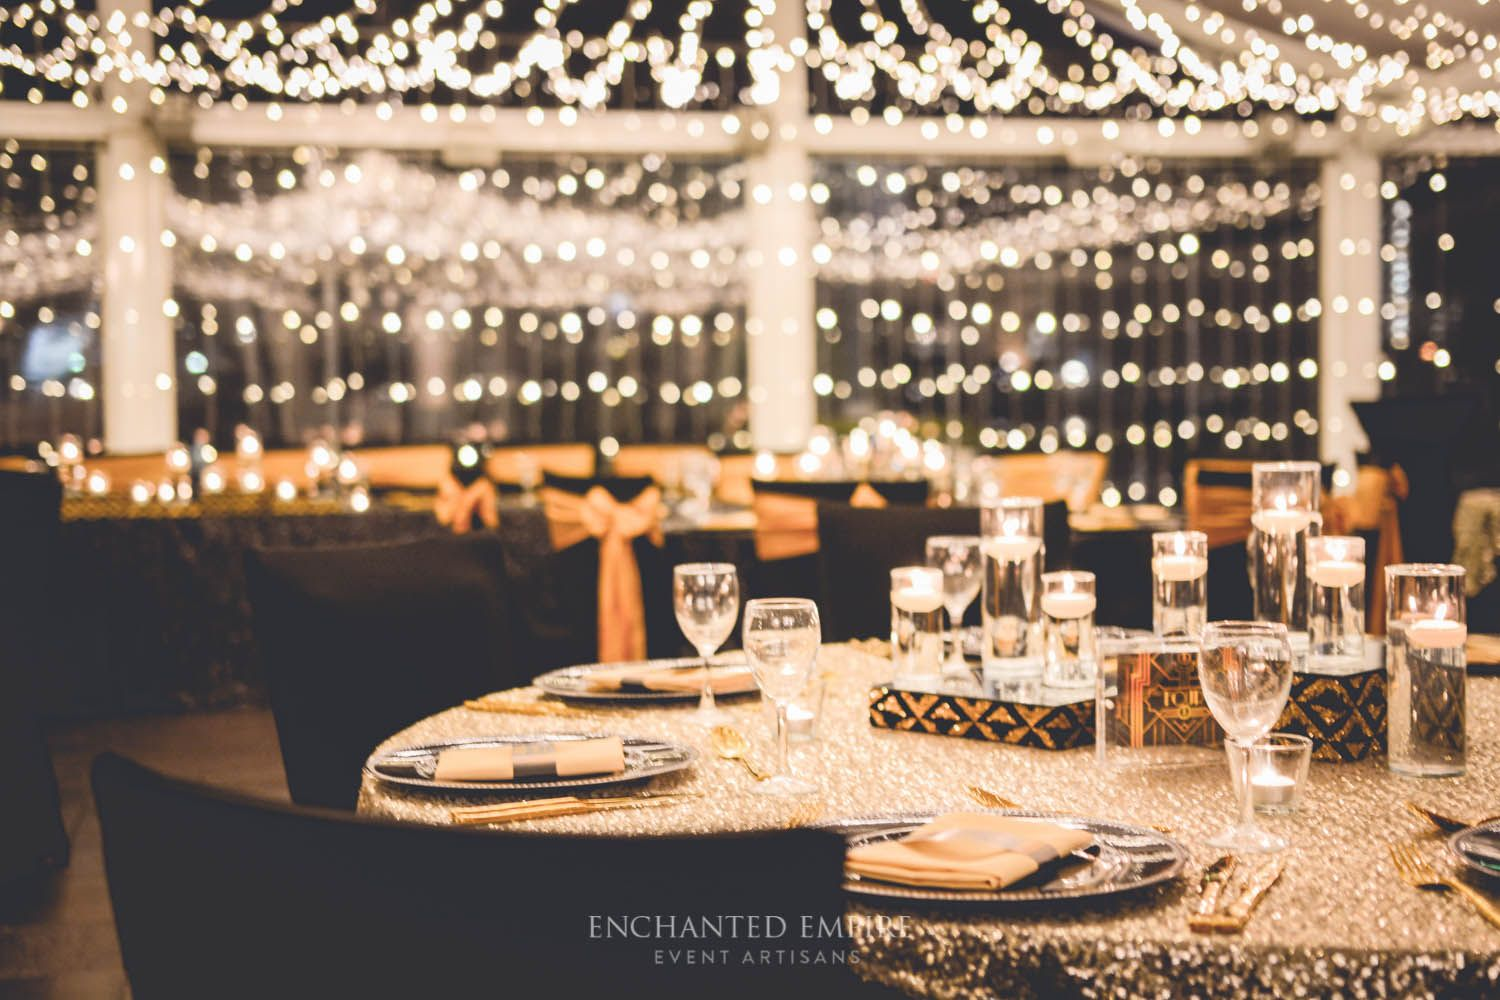 Great gatsby fairylight canopy sequin linen gold cutlery art great gatsby wedding styling by enchanted empire event artisans brisbane qld junglespirit Image collections